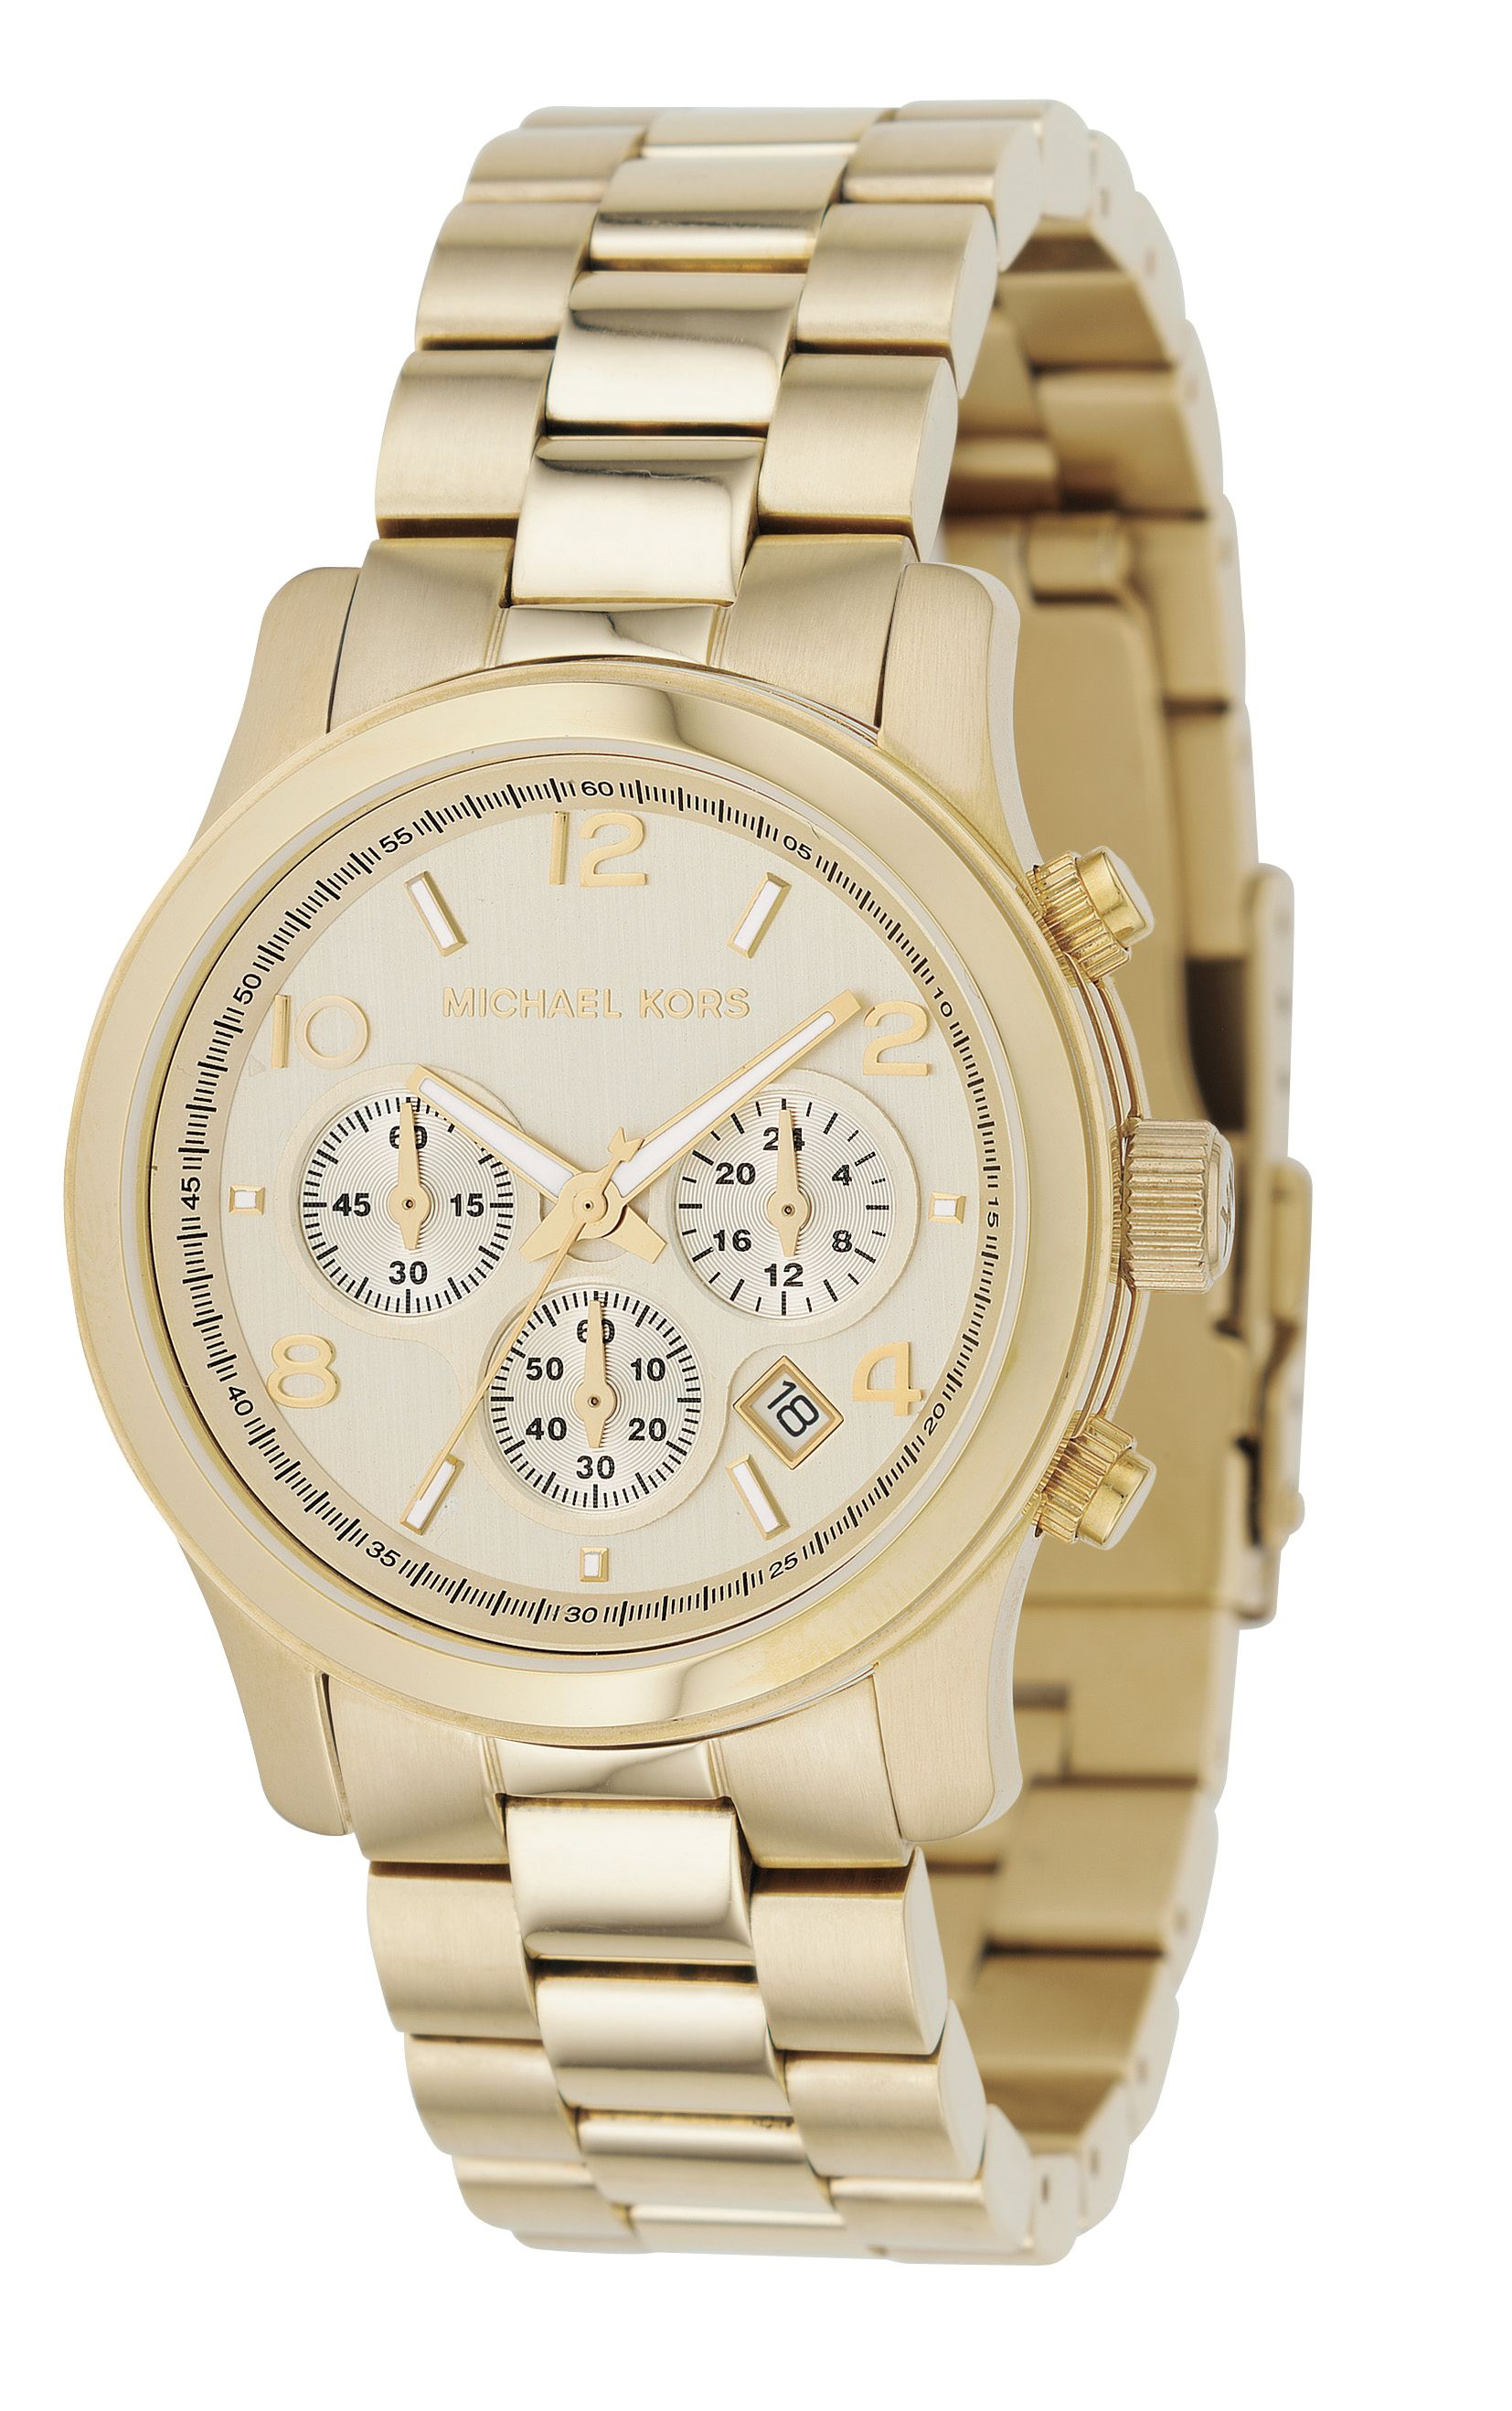 Michael Kors Sport Chronograph gold plated product image